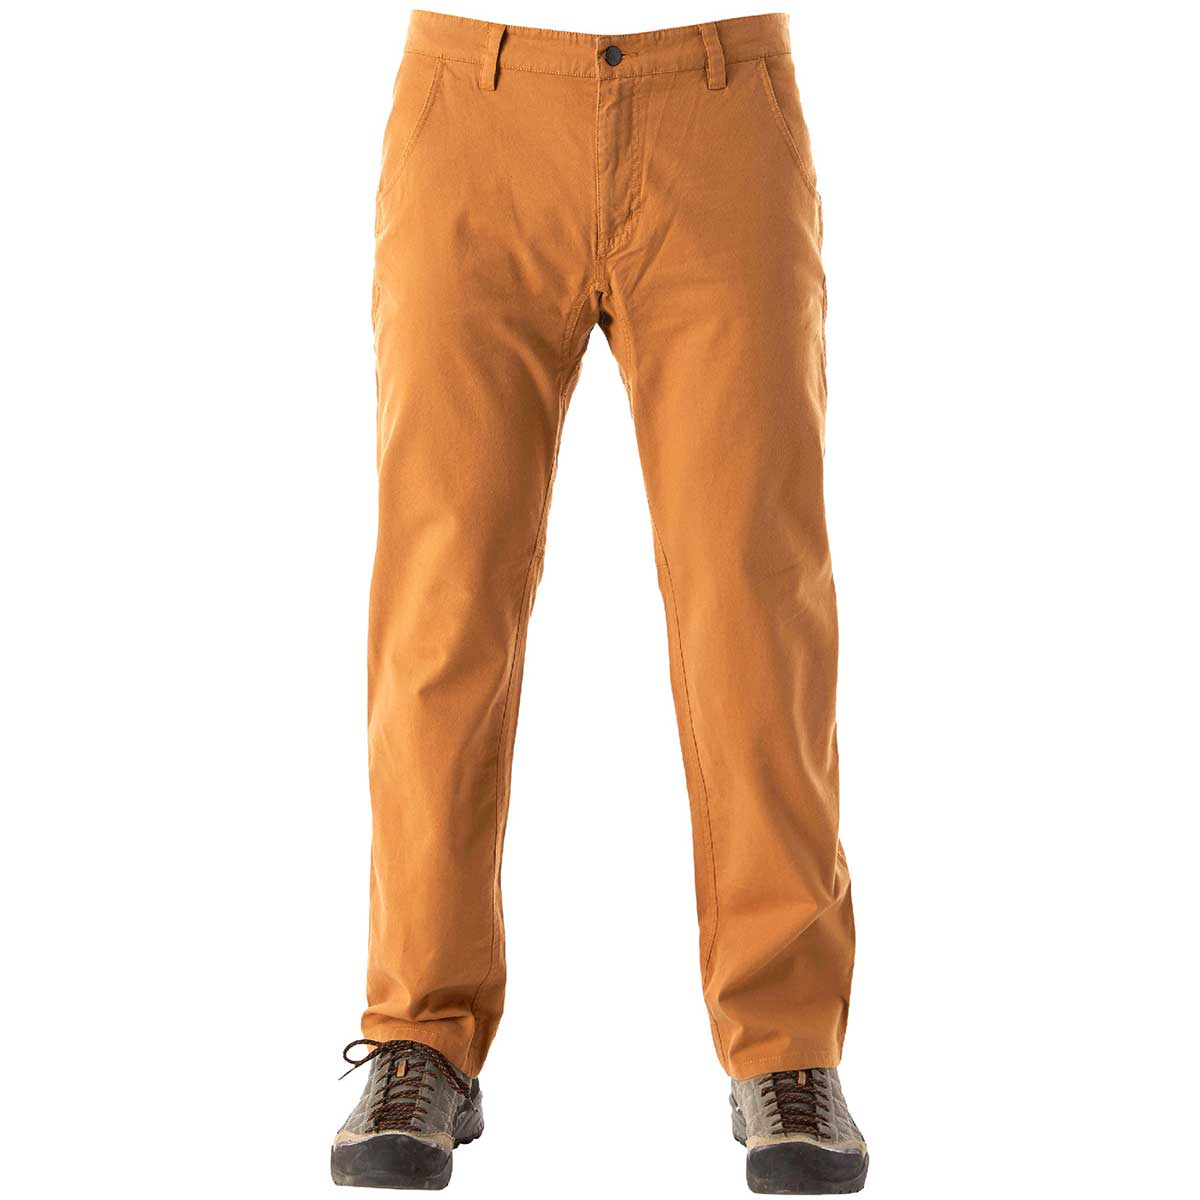 Flylow men's Ditch Pant in Rye front view